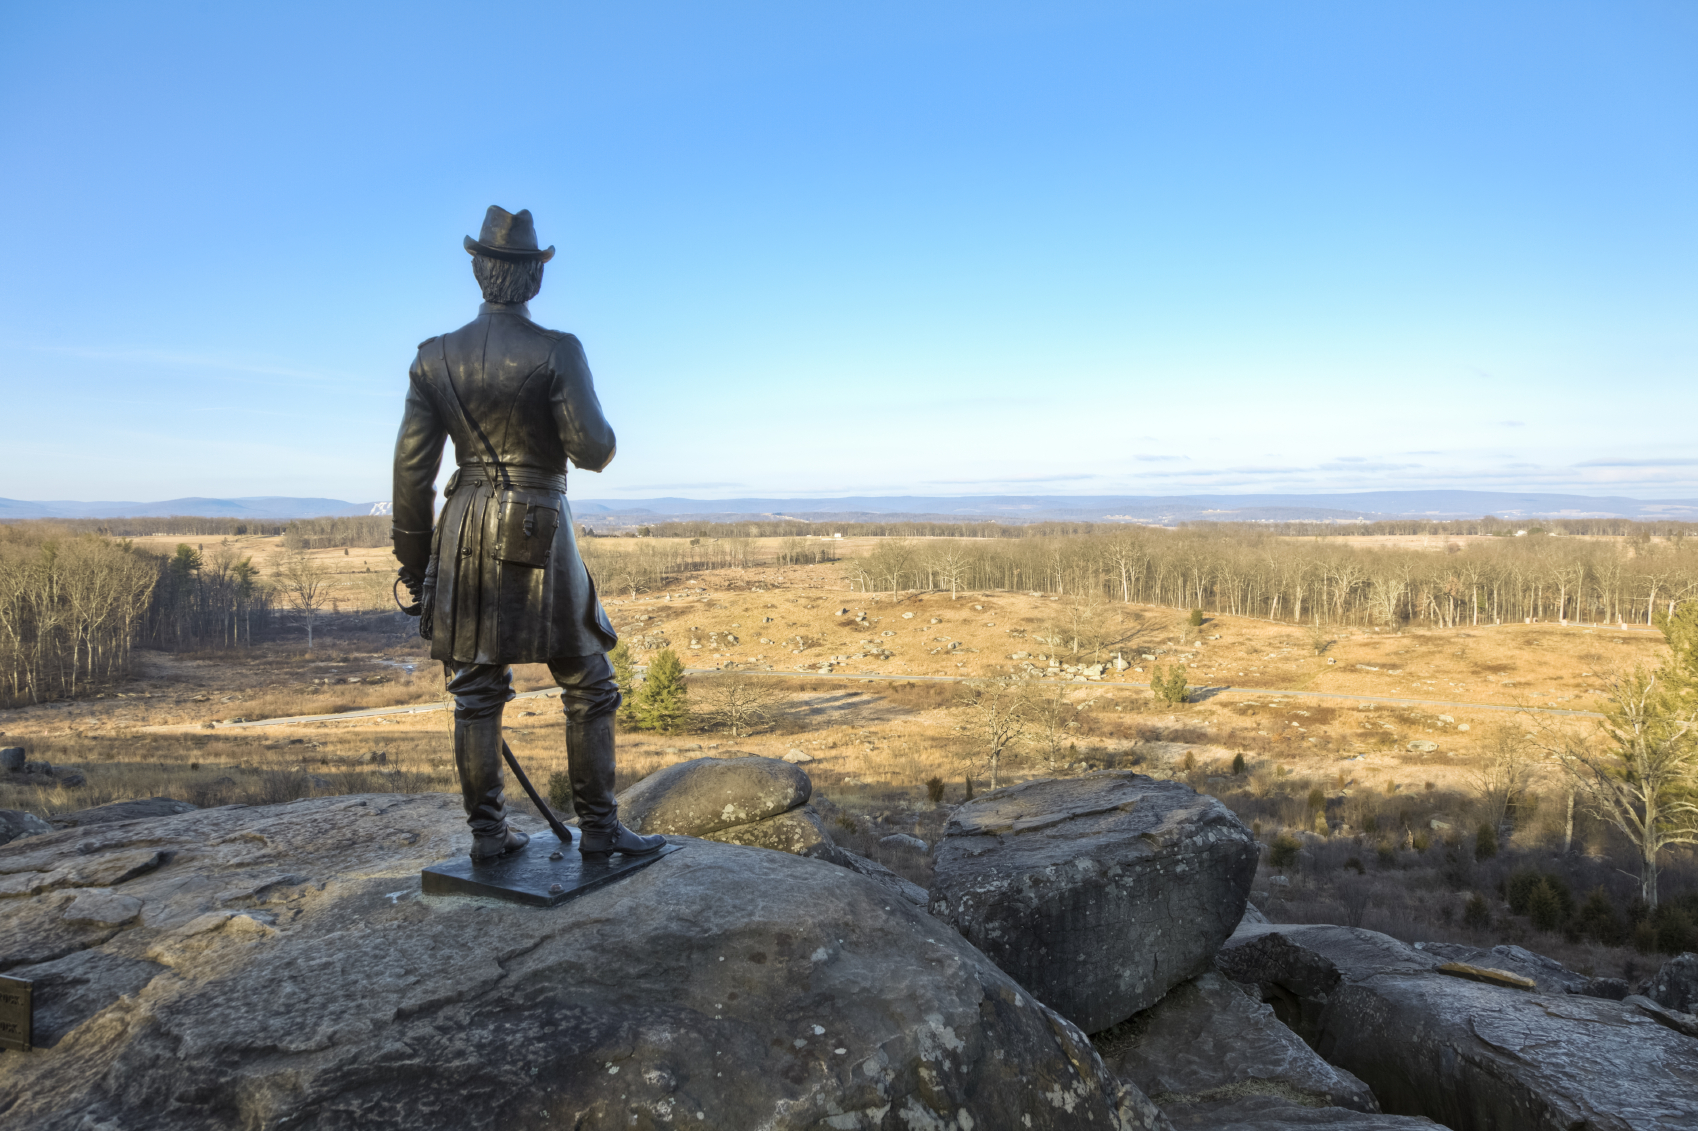 Remembering The Battle Of Gettysburg On This 149th Anniversary Gettysburg 150 Concerts